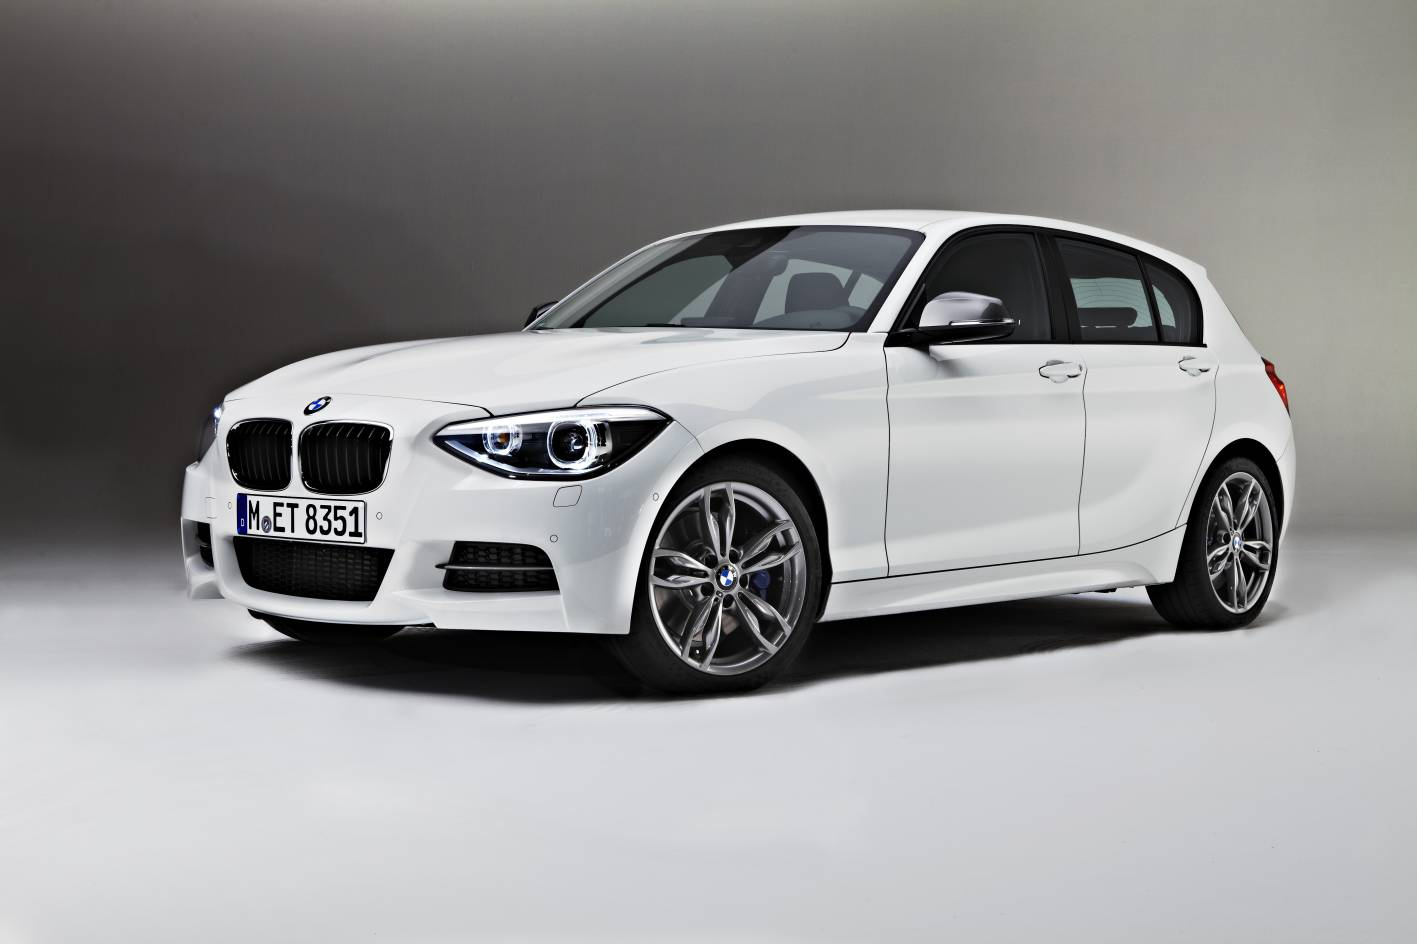 Dodge Charger Lease >> BMW M135i hot hatch available in Australia now - ForceGT.com